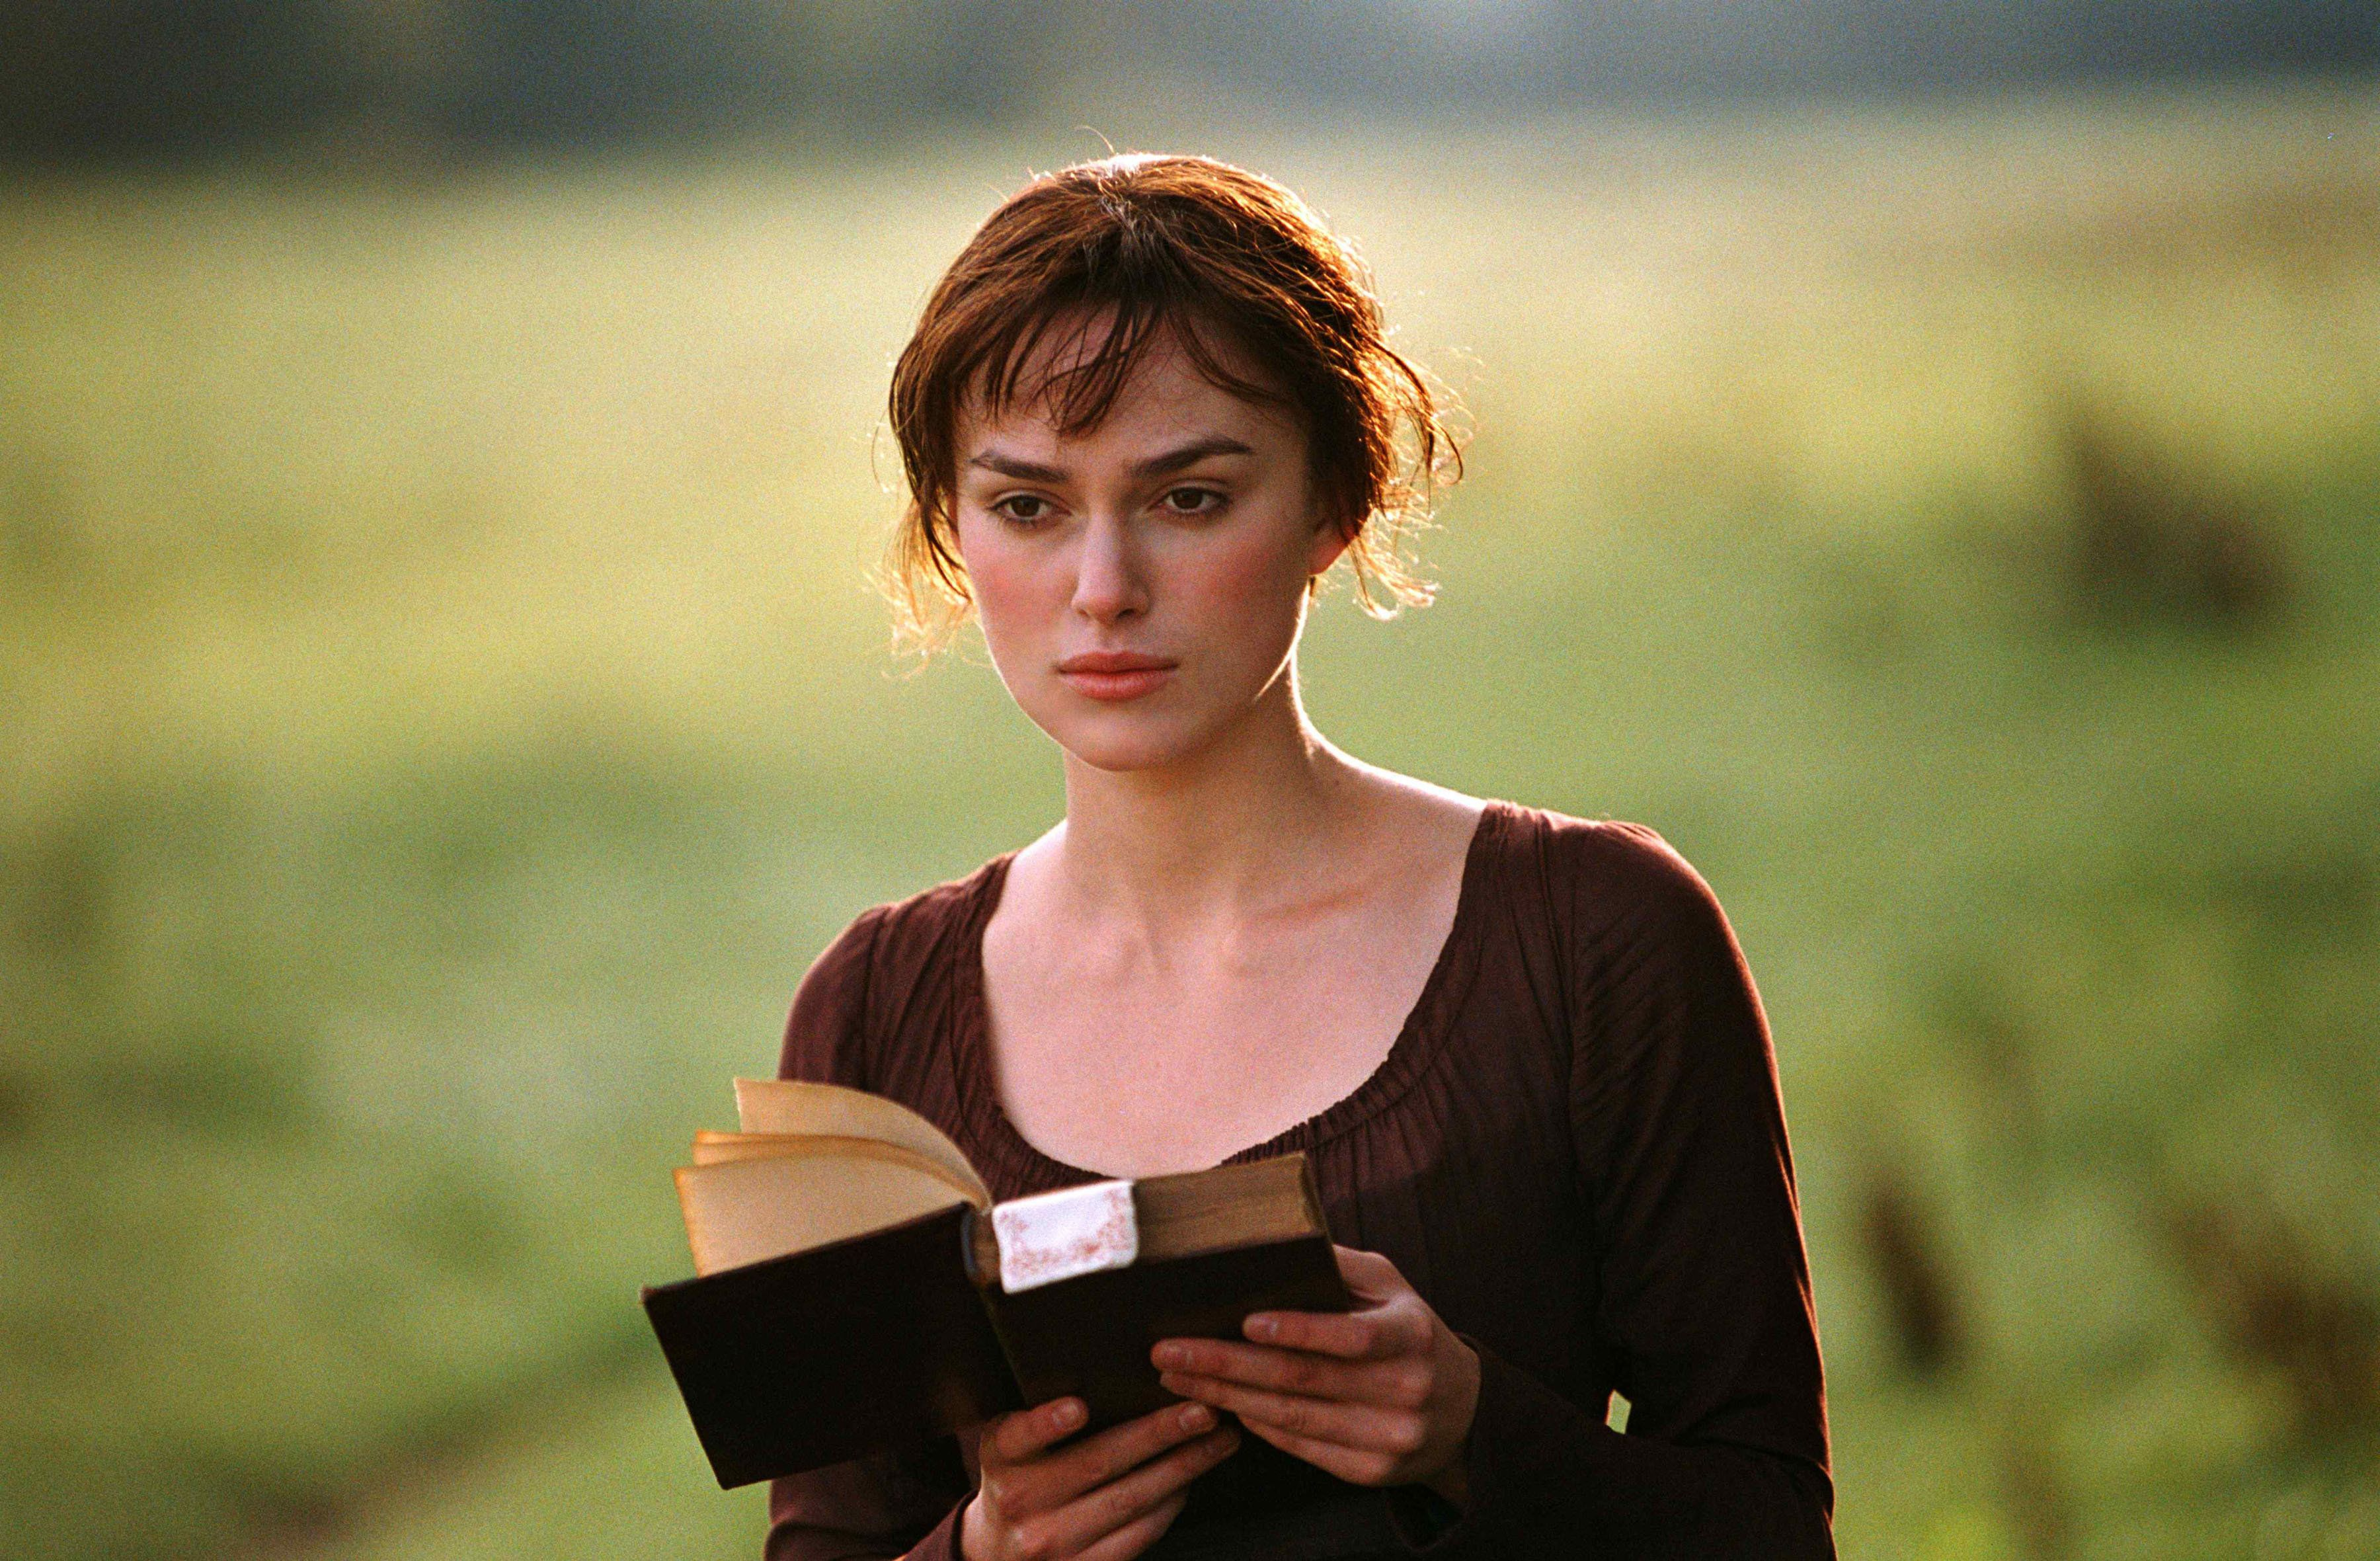 Keira played Elizabeth Bennet in the 2005 big screen adaptation of 'Pride And